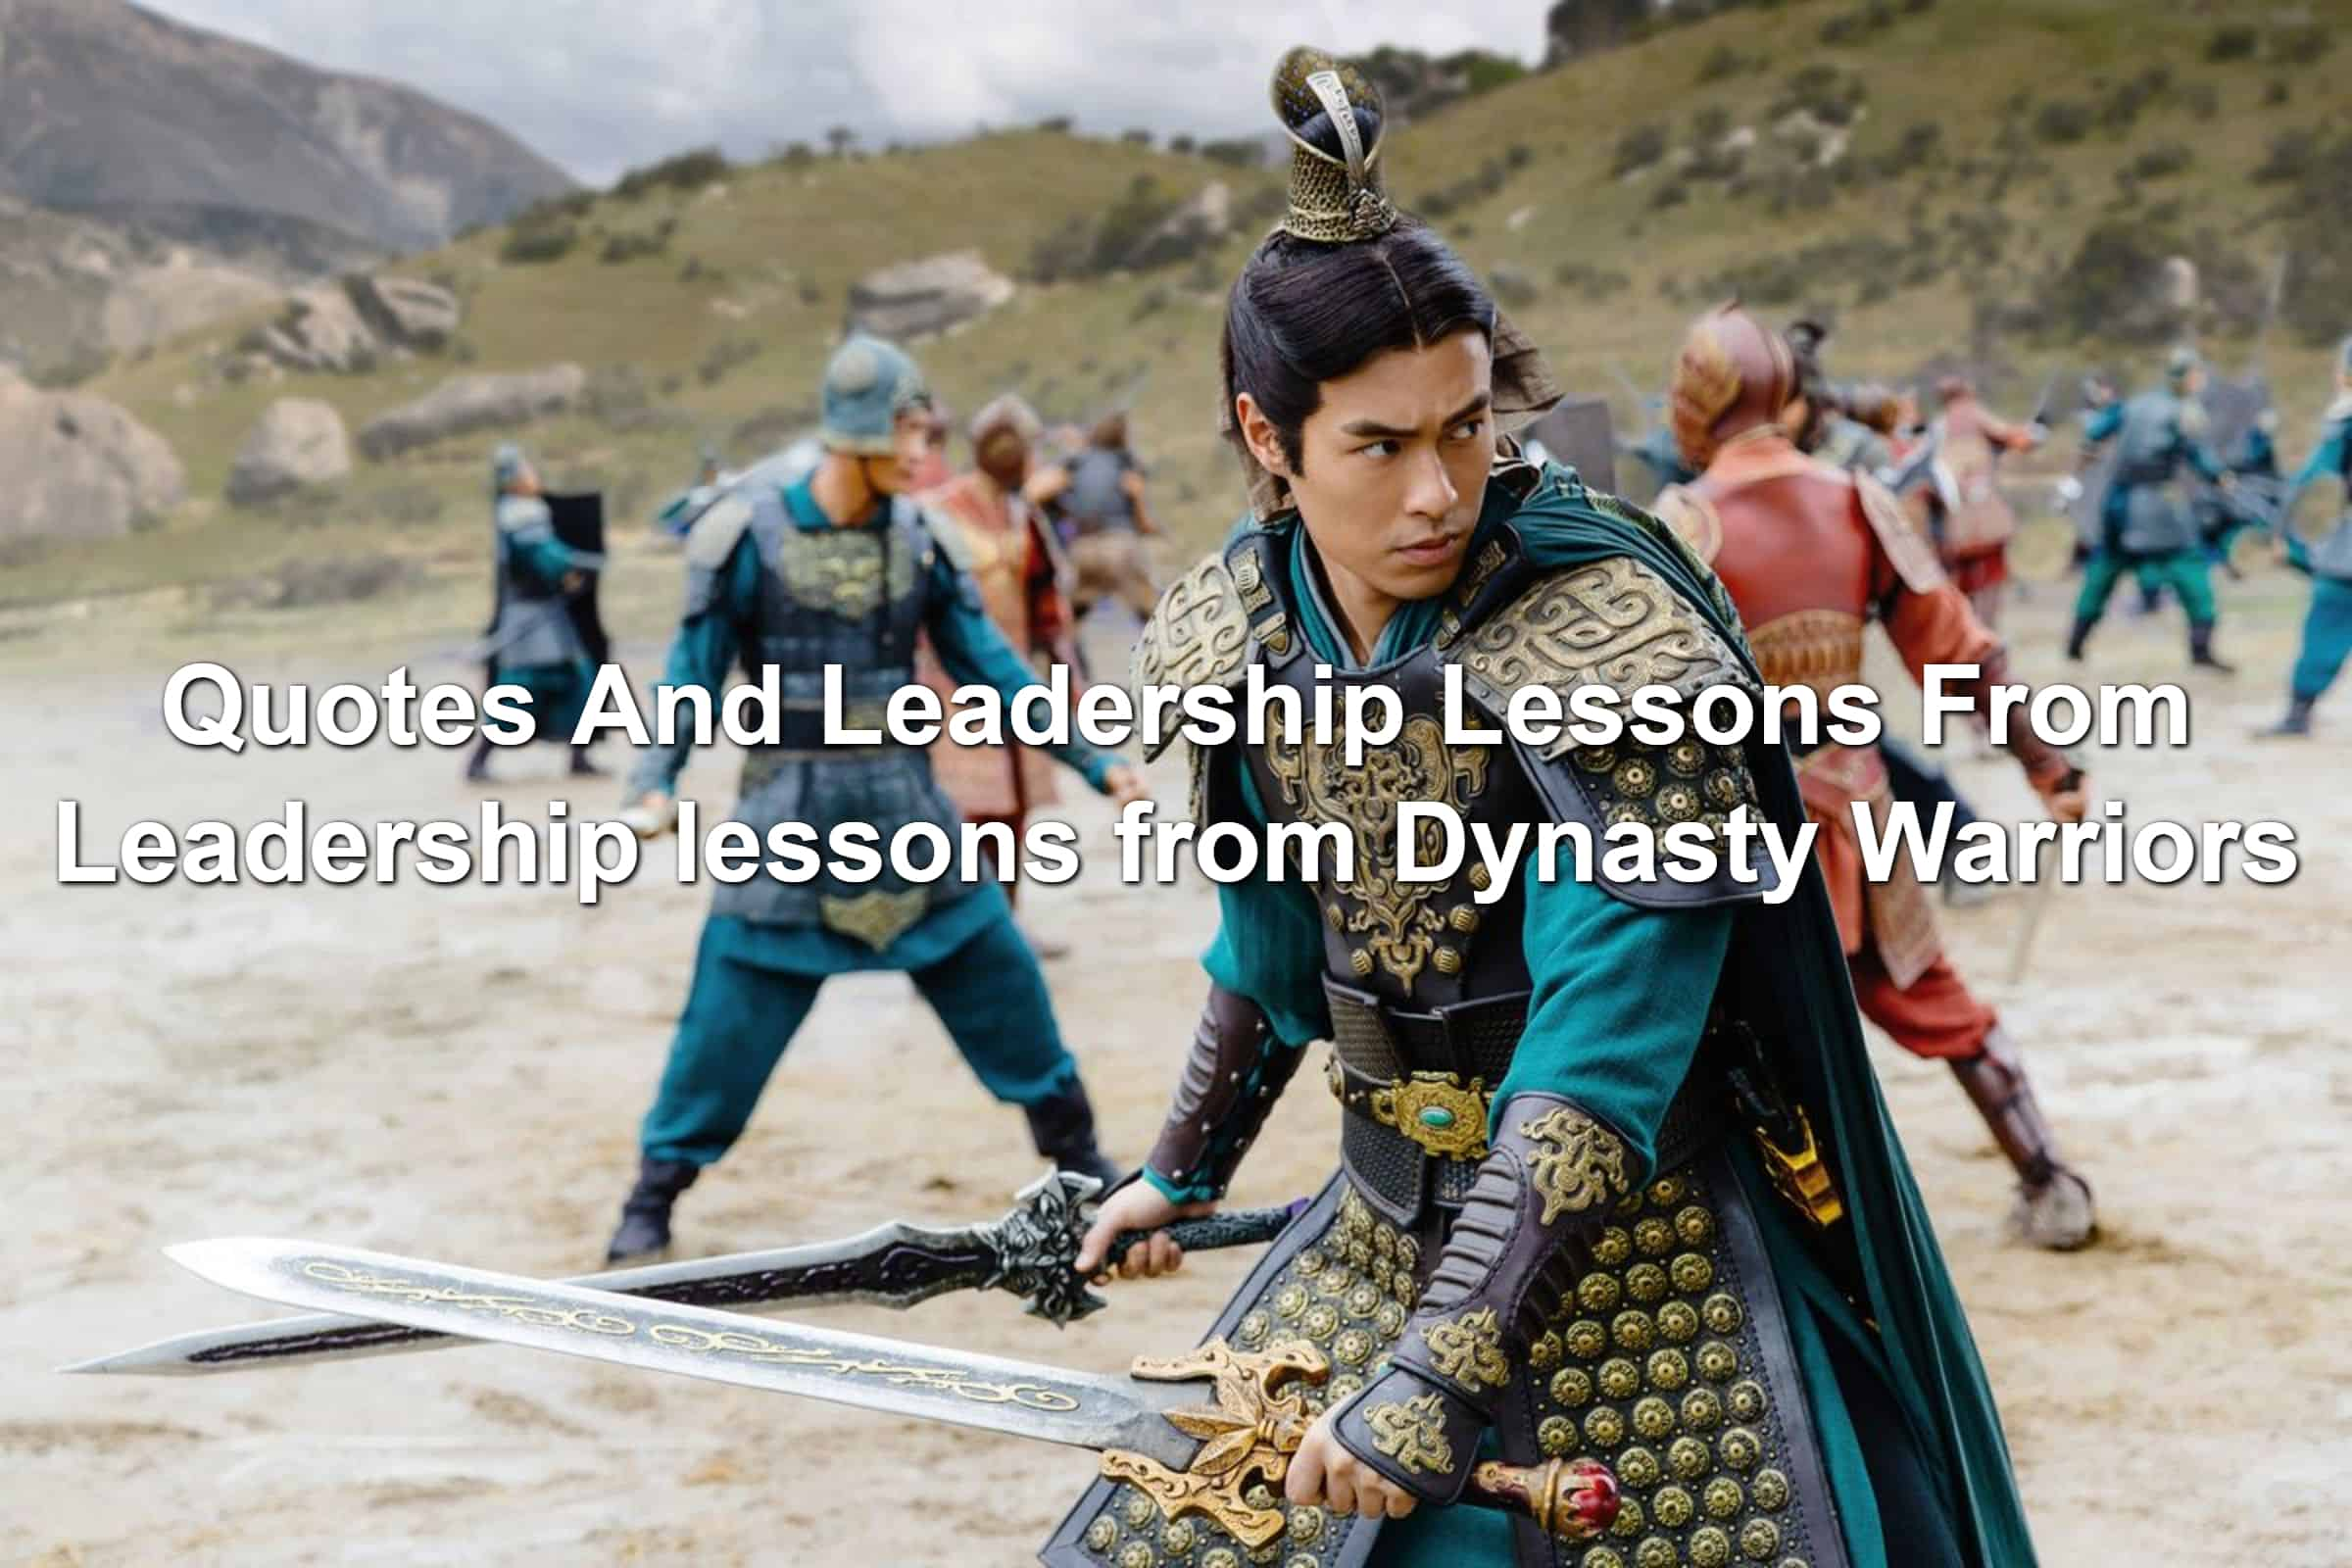 Still from Dynasty Warriors movie. Warrior in a heroic pose.